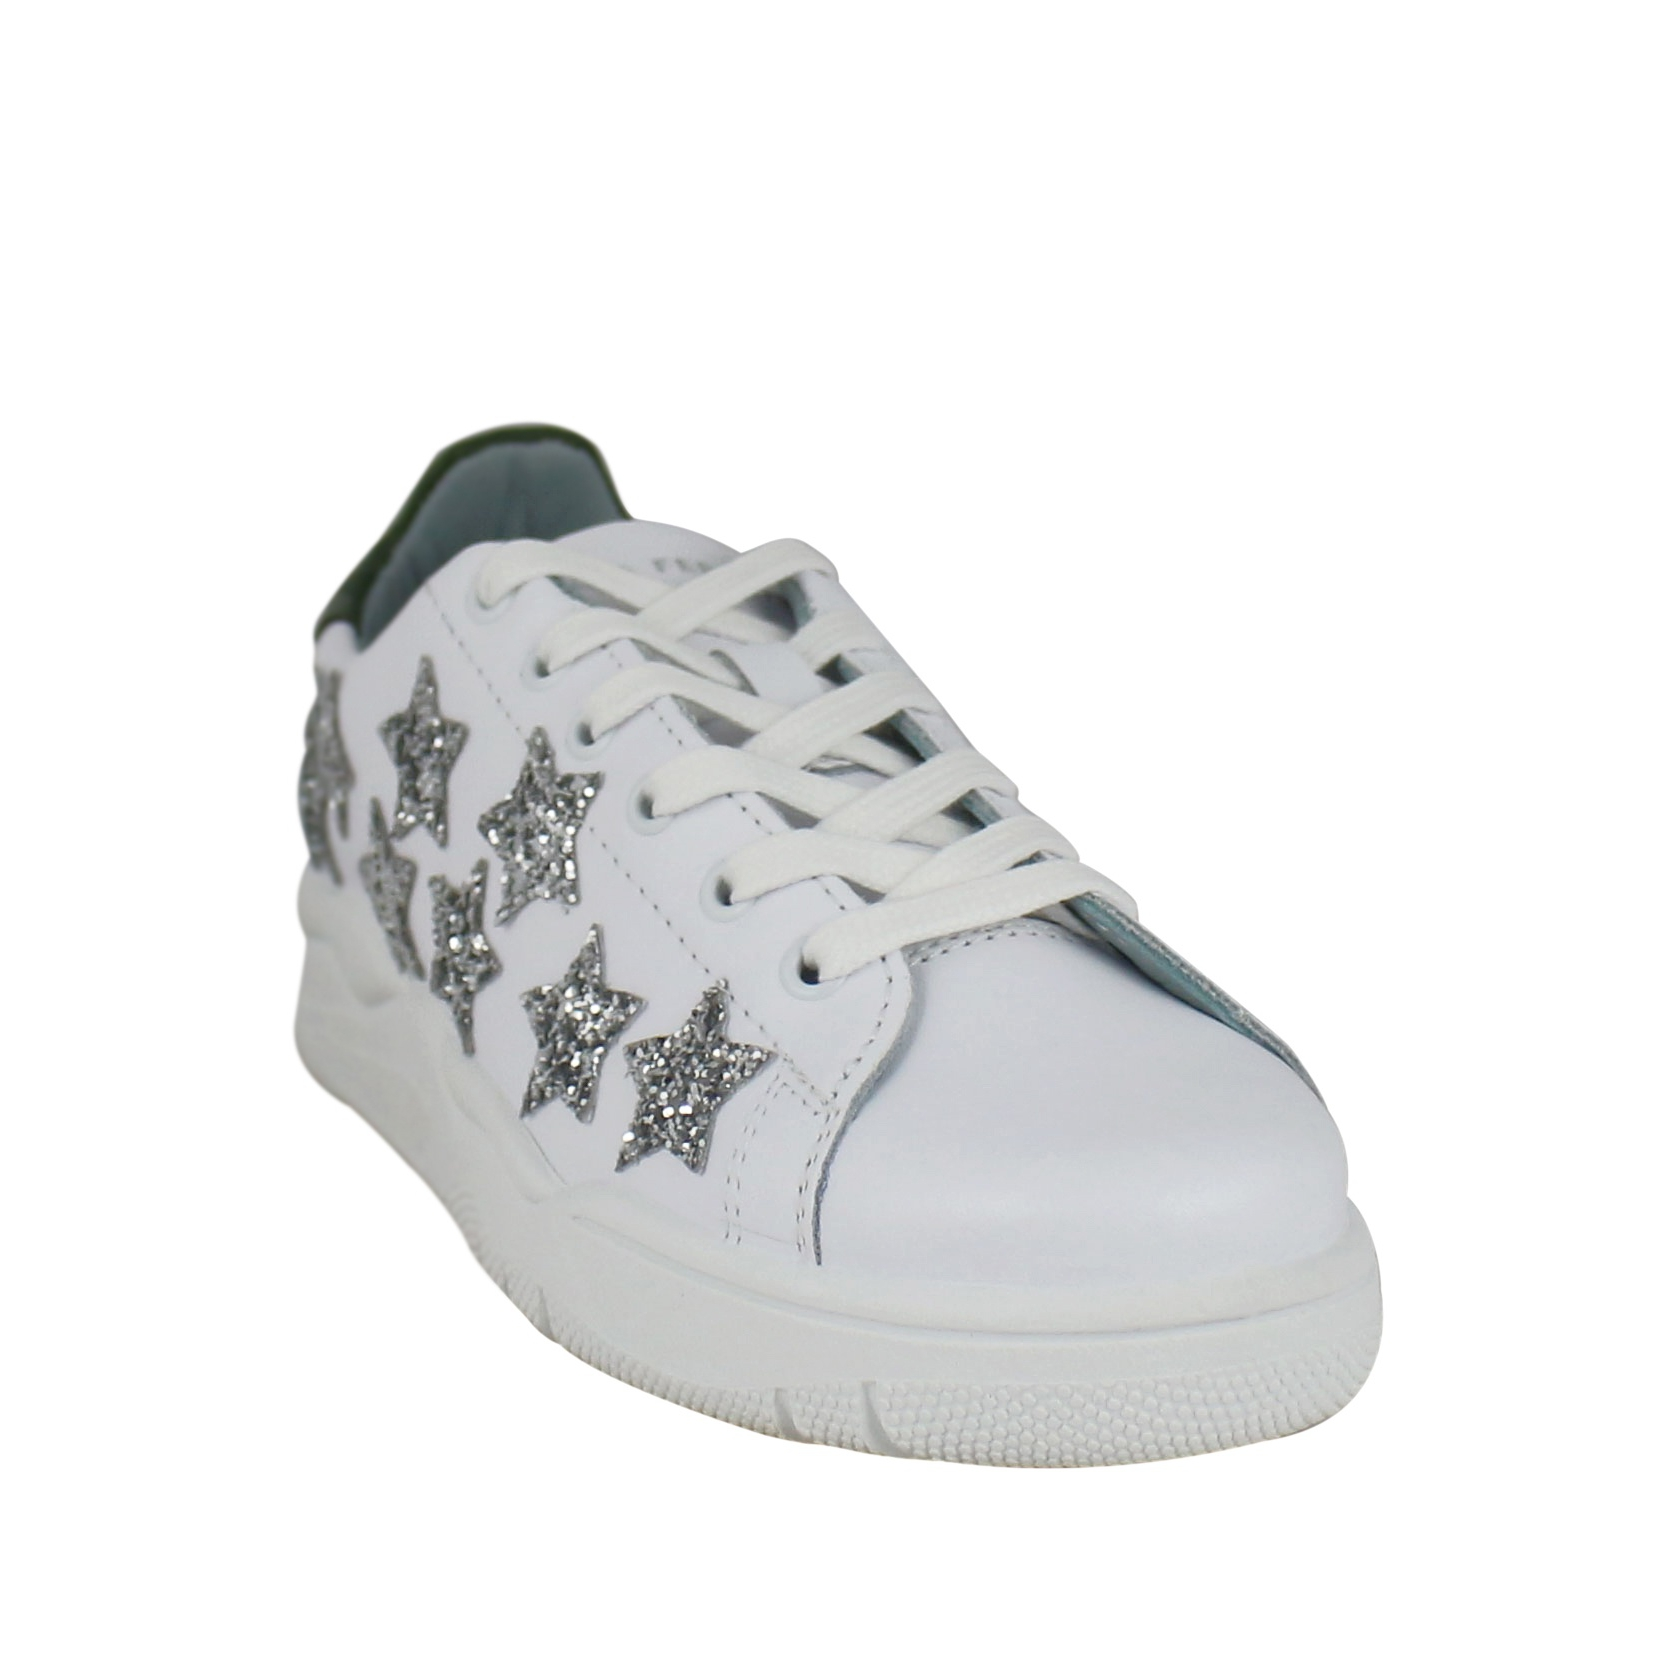 best service 2603a 4866e Sneakers with glitter stars